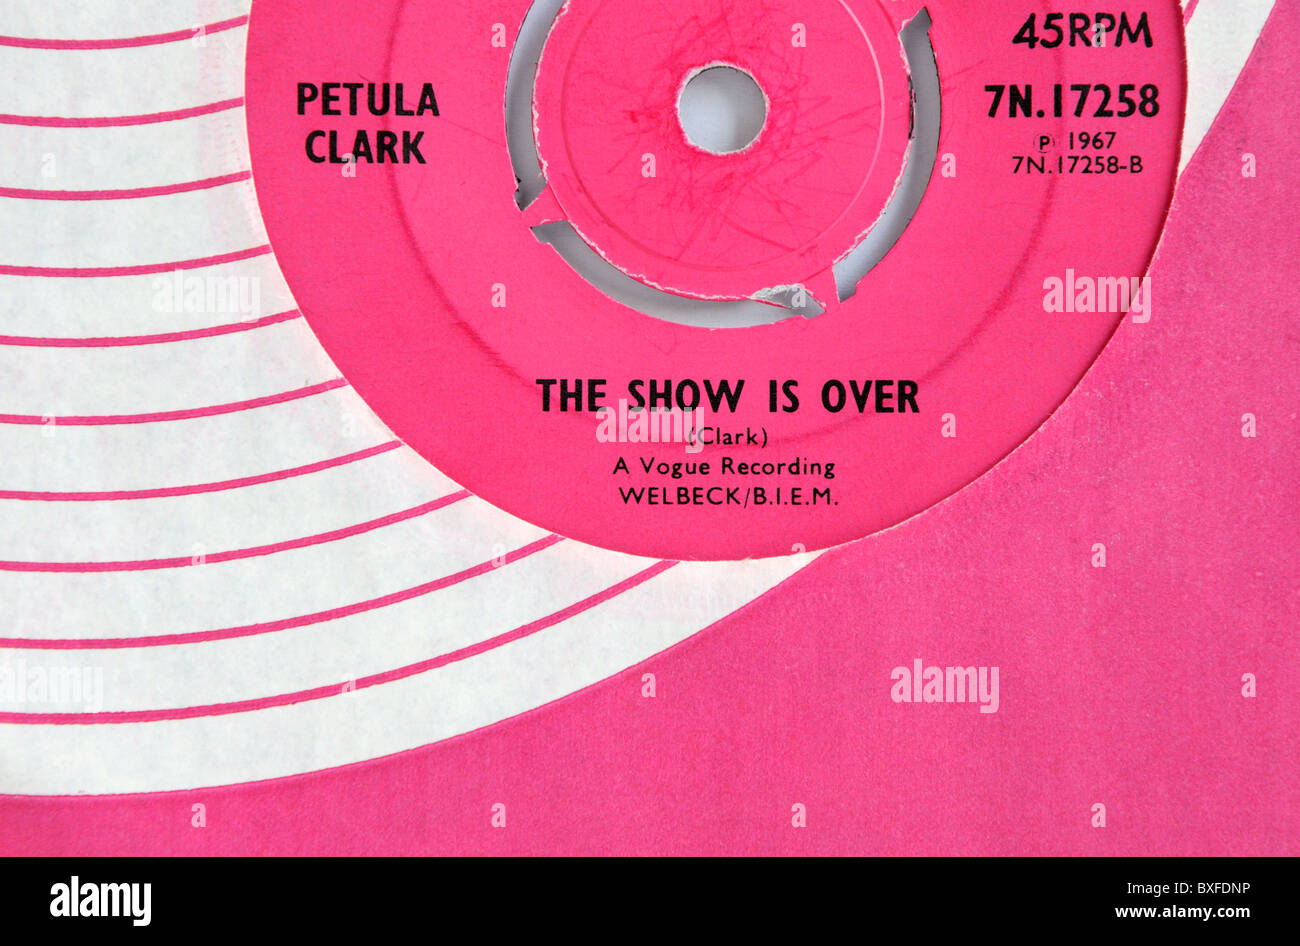 Petula Clark's 1967 single 'The Show is Over' - Stock Image